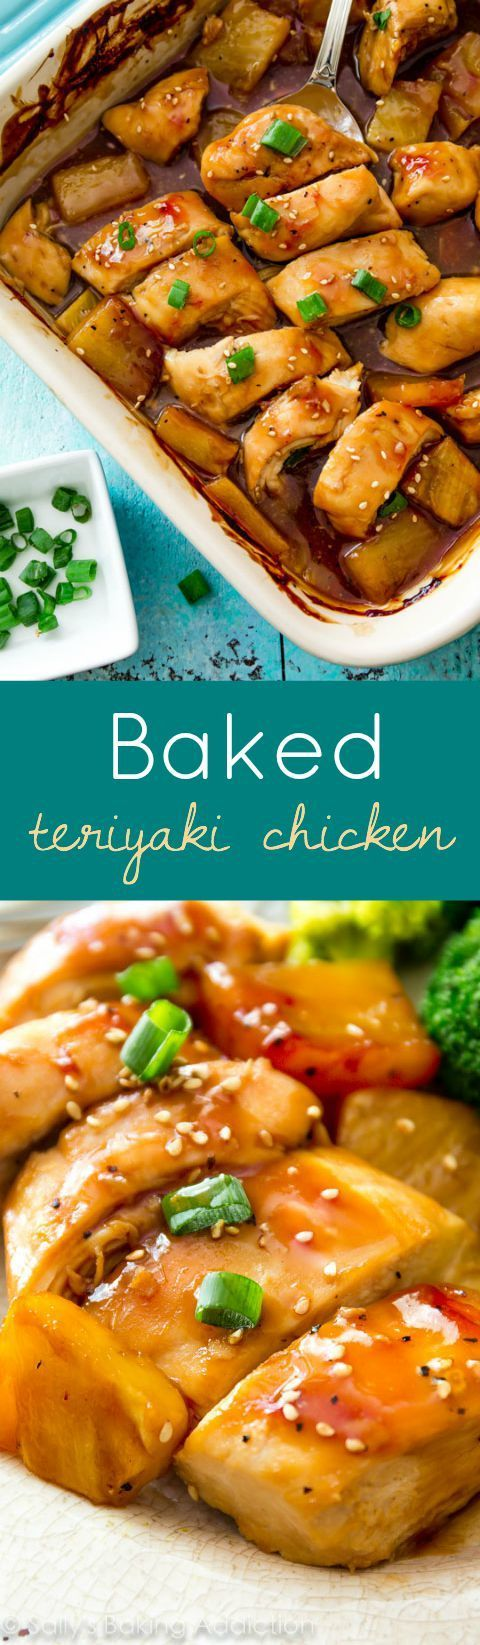 Sallys Baking Addiction Easy Healthy Dinner: Baked Pineapple Teriyaki Chicken - Sallys Baking Addiction